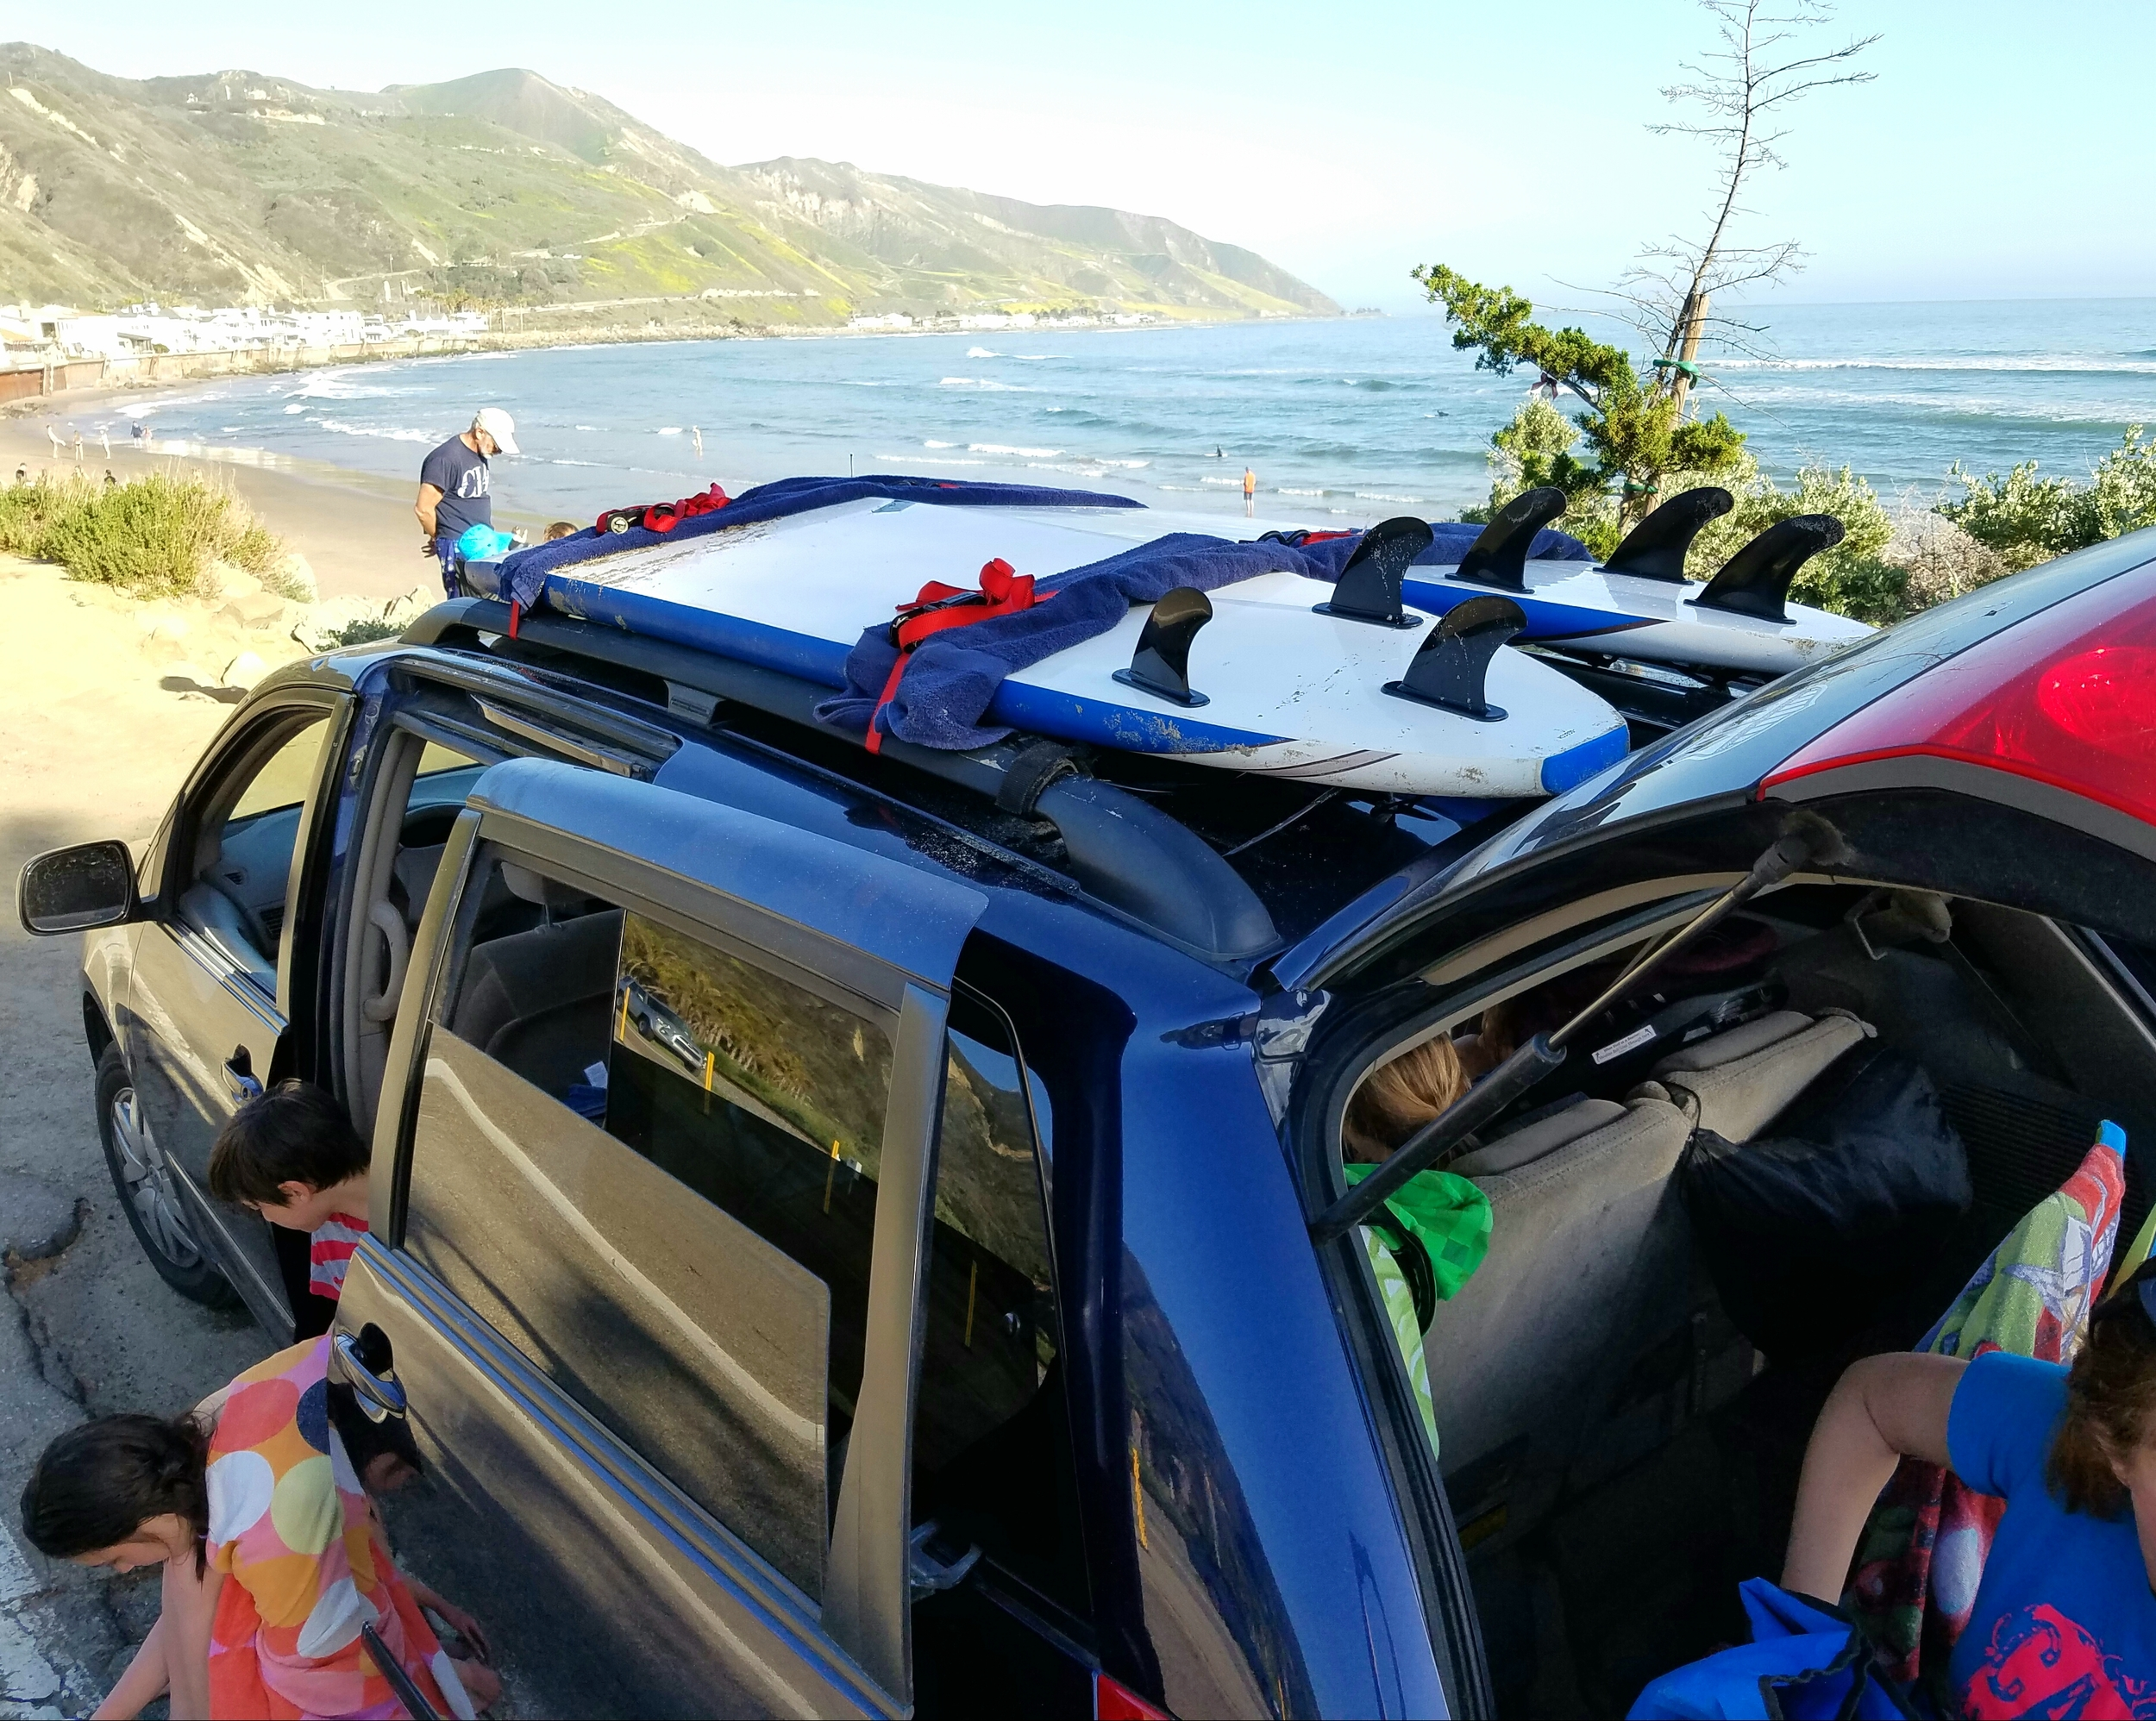 Surfboard-toting, beach-going minivans are cool.